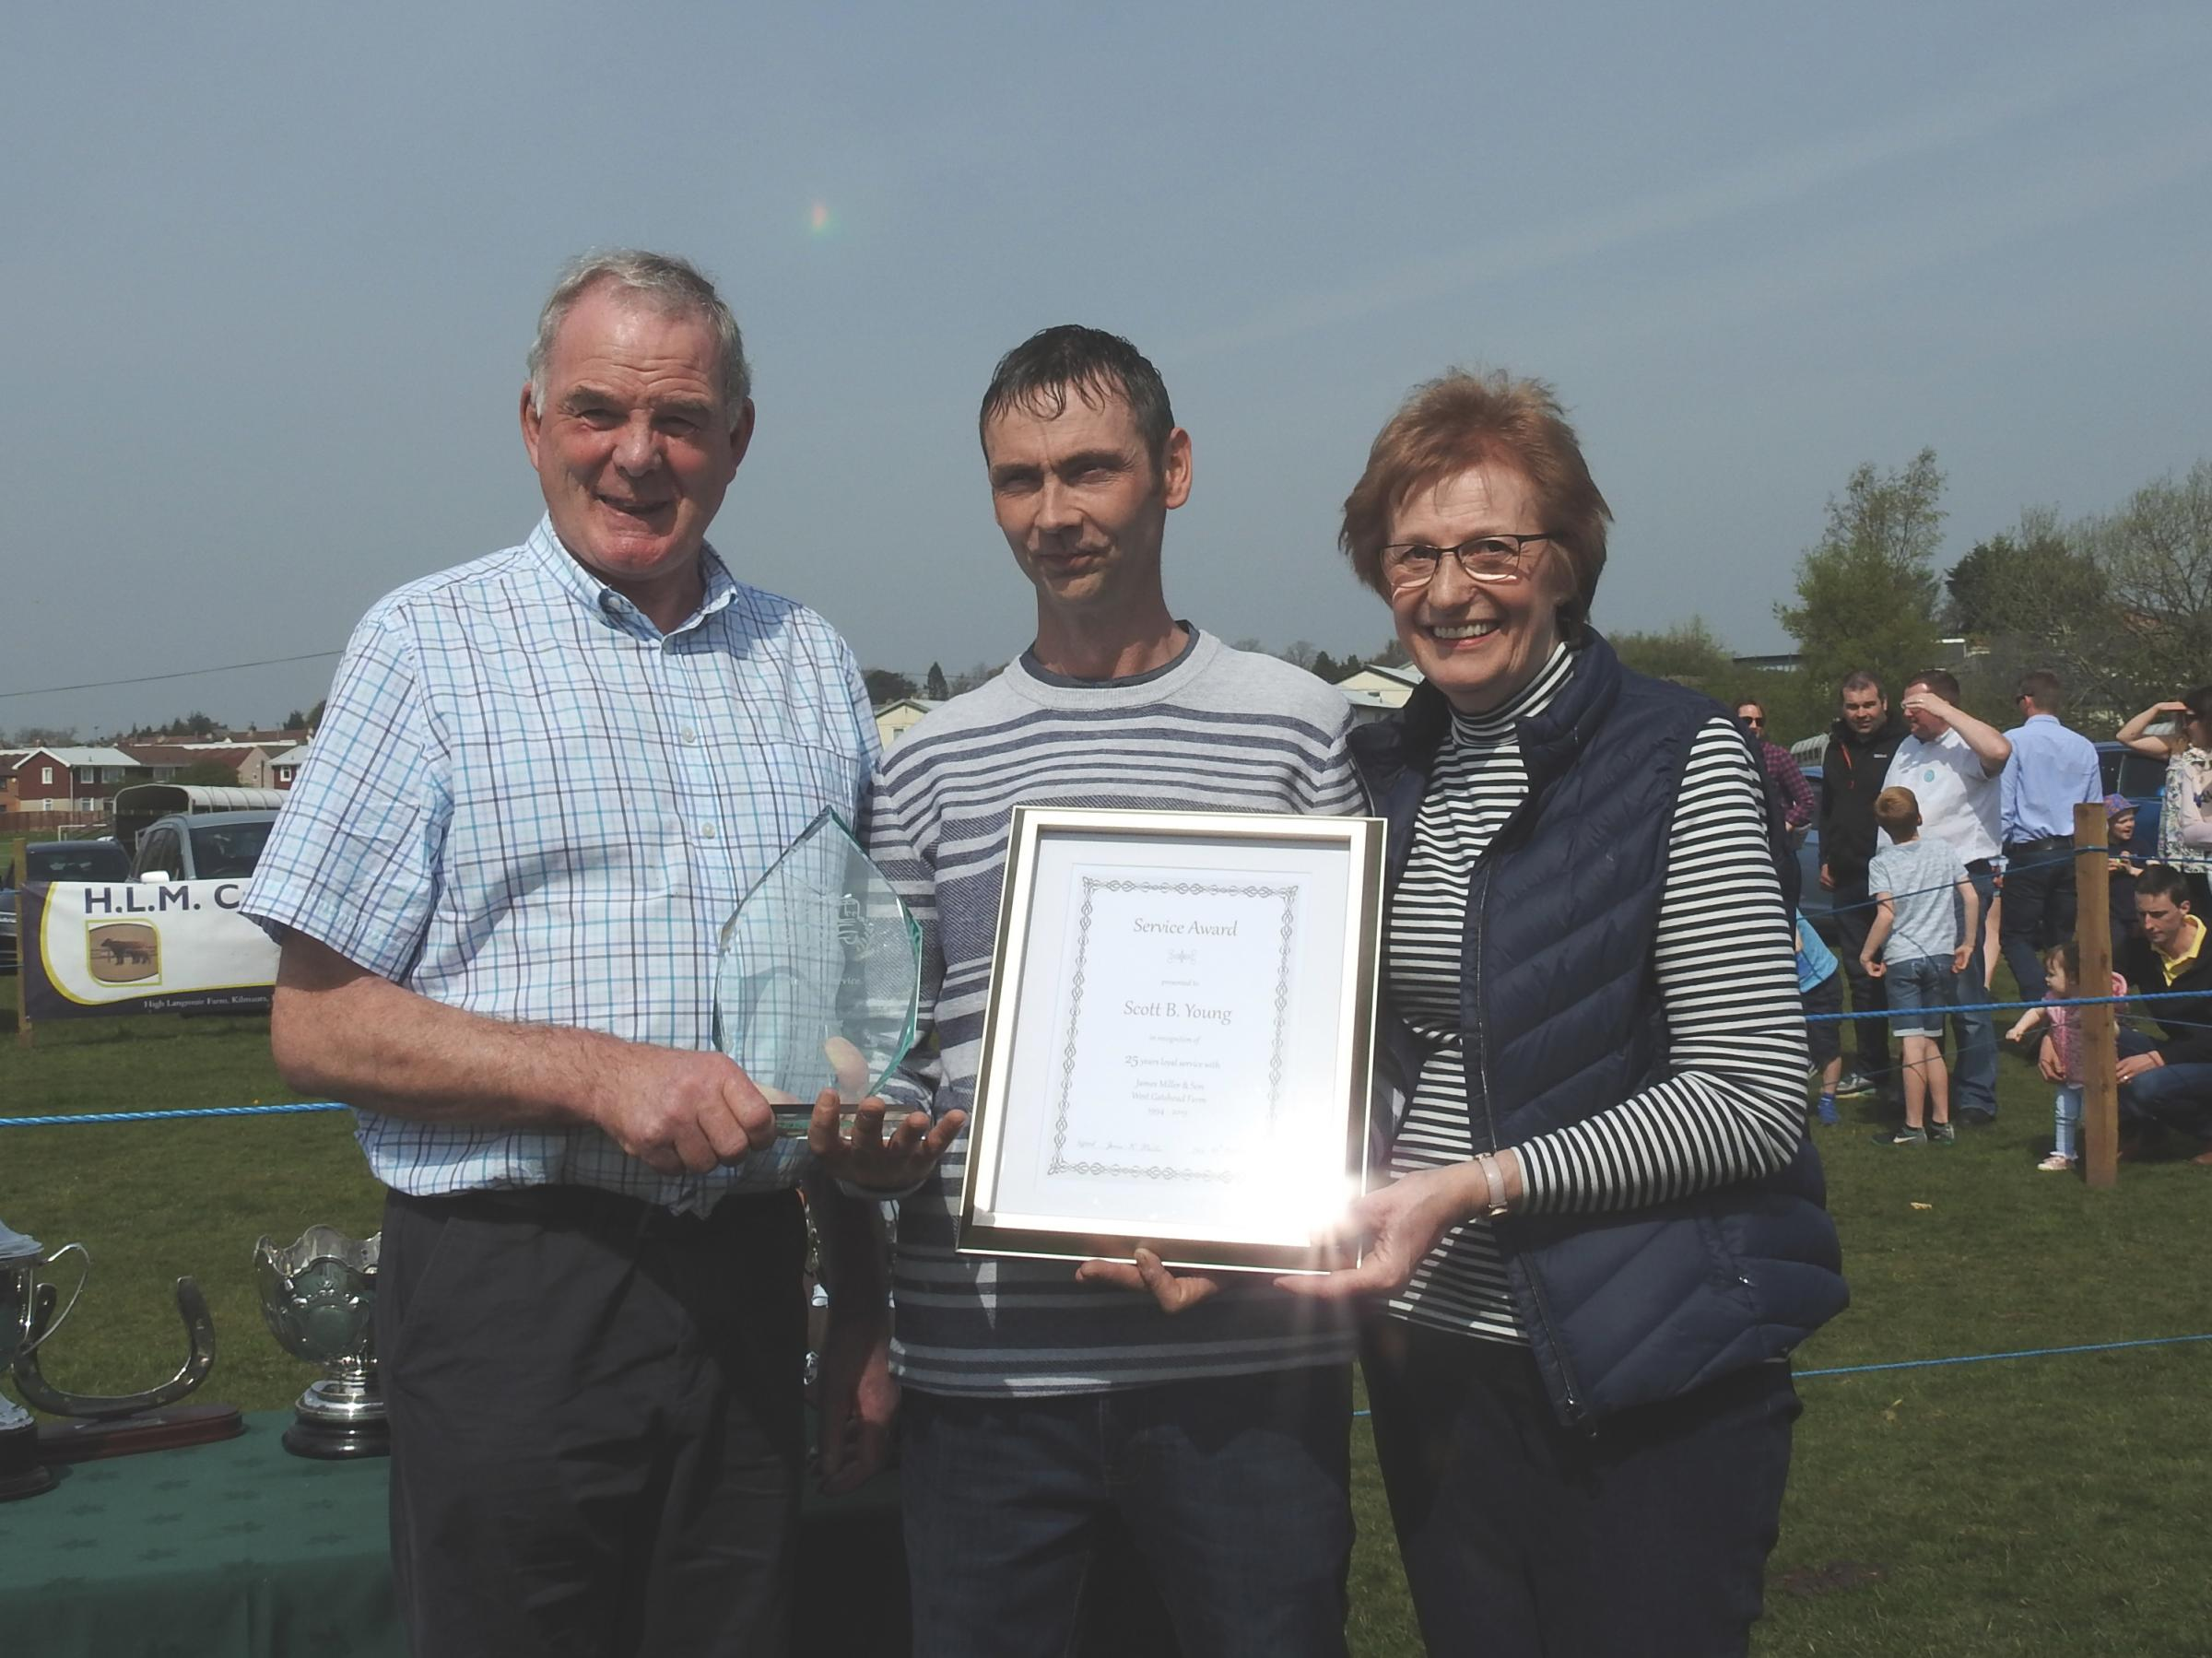 SCOTT YOUNG has been presented with an award for 25 years service to the Miller family of West Gatehead Farm, Kilmarnock. He is pictured here, receiving his award from Jim and Nanette Miller, at last weekend's Kilmaurs Show